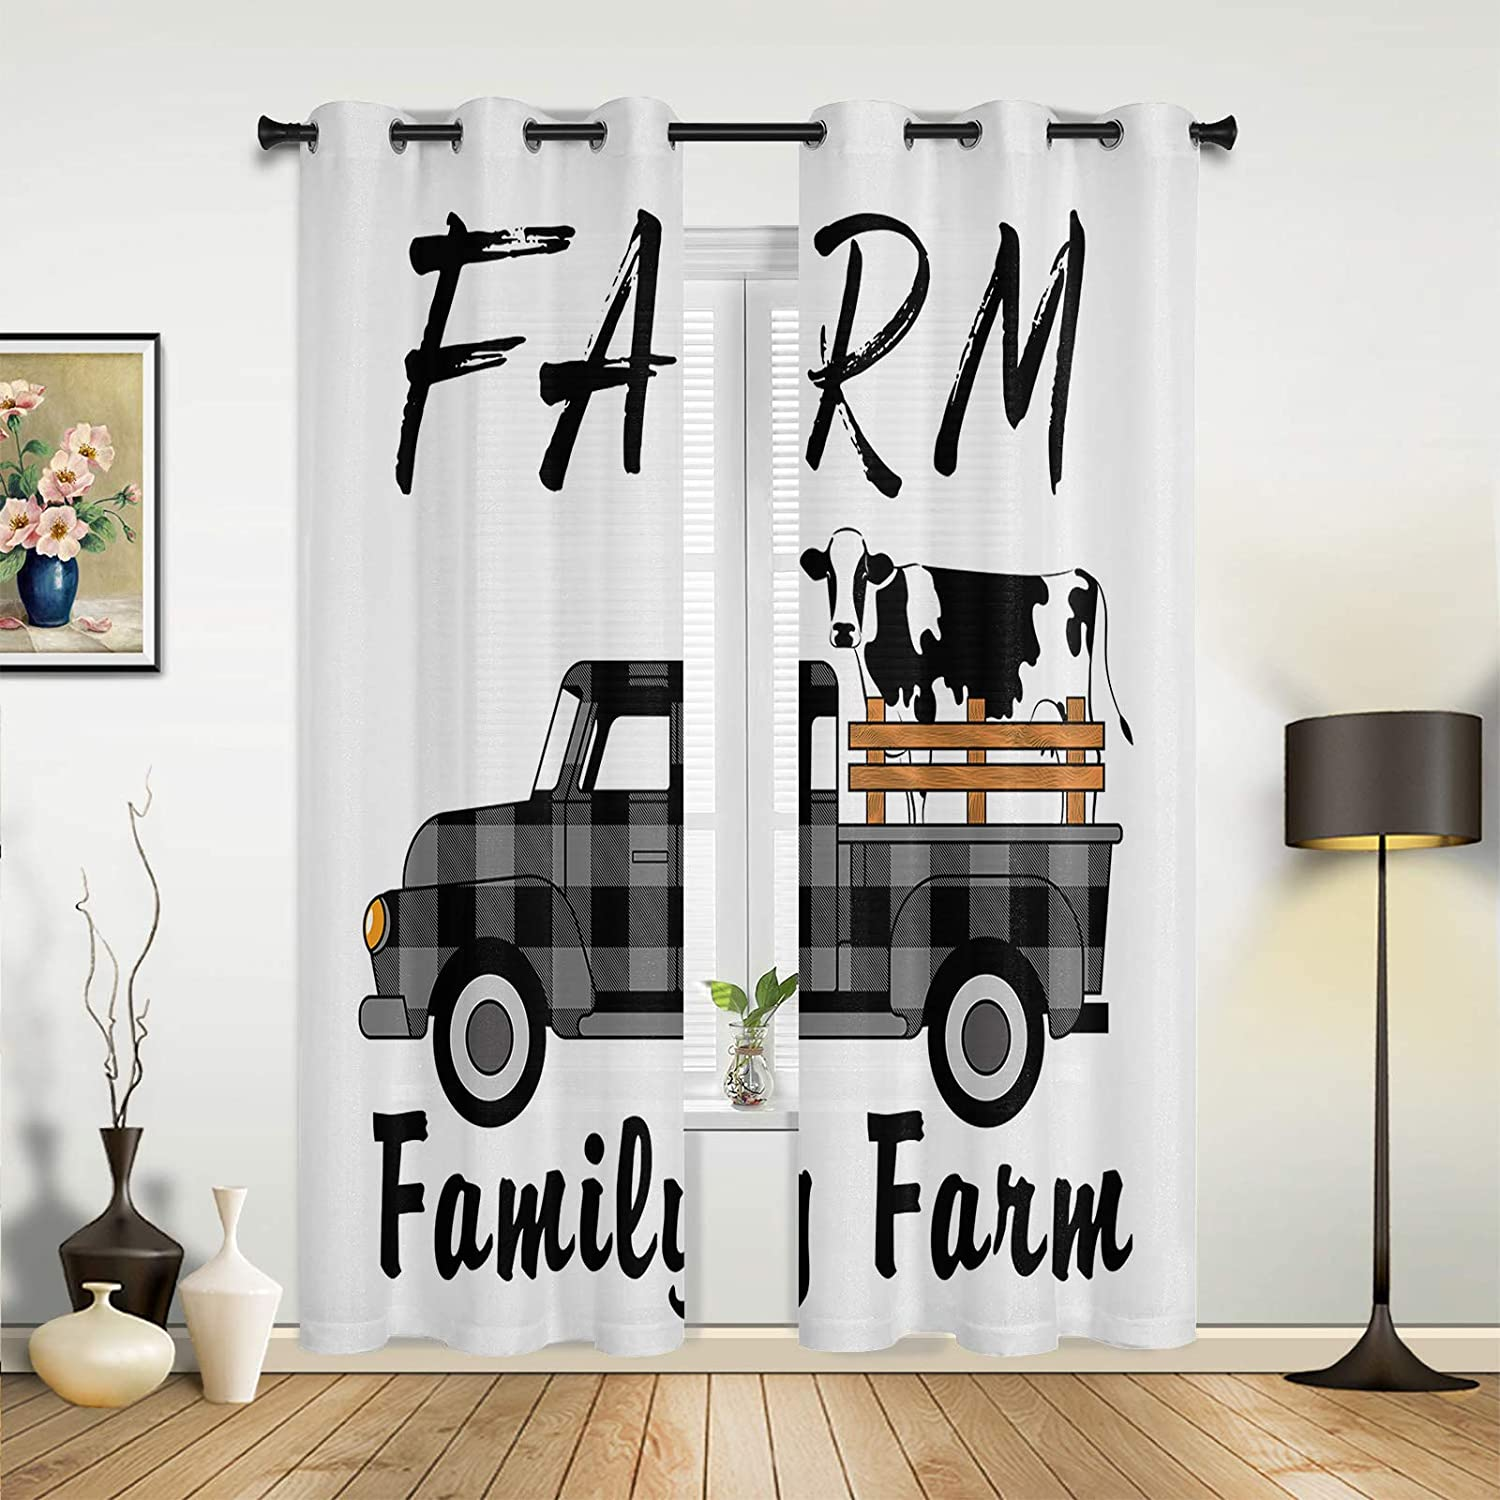 Window Sheer Curtains for Fashionable Bedroom Country Baltimore Mall USA Room Living Style